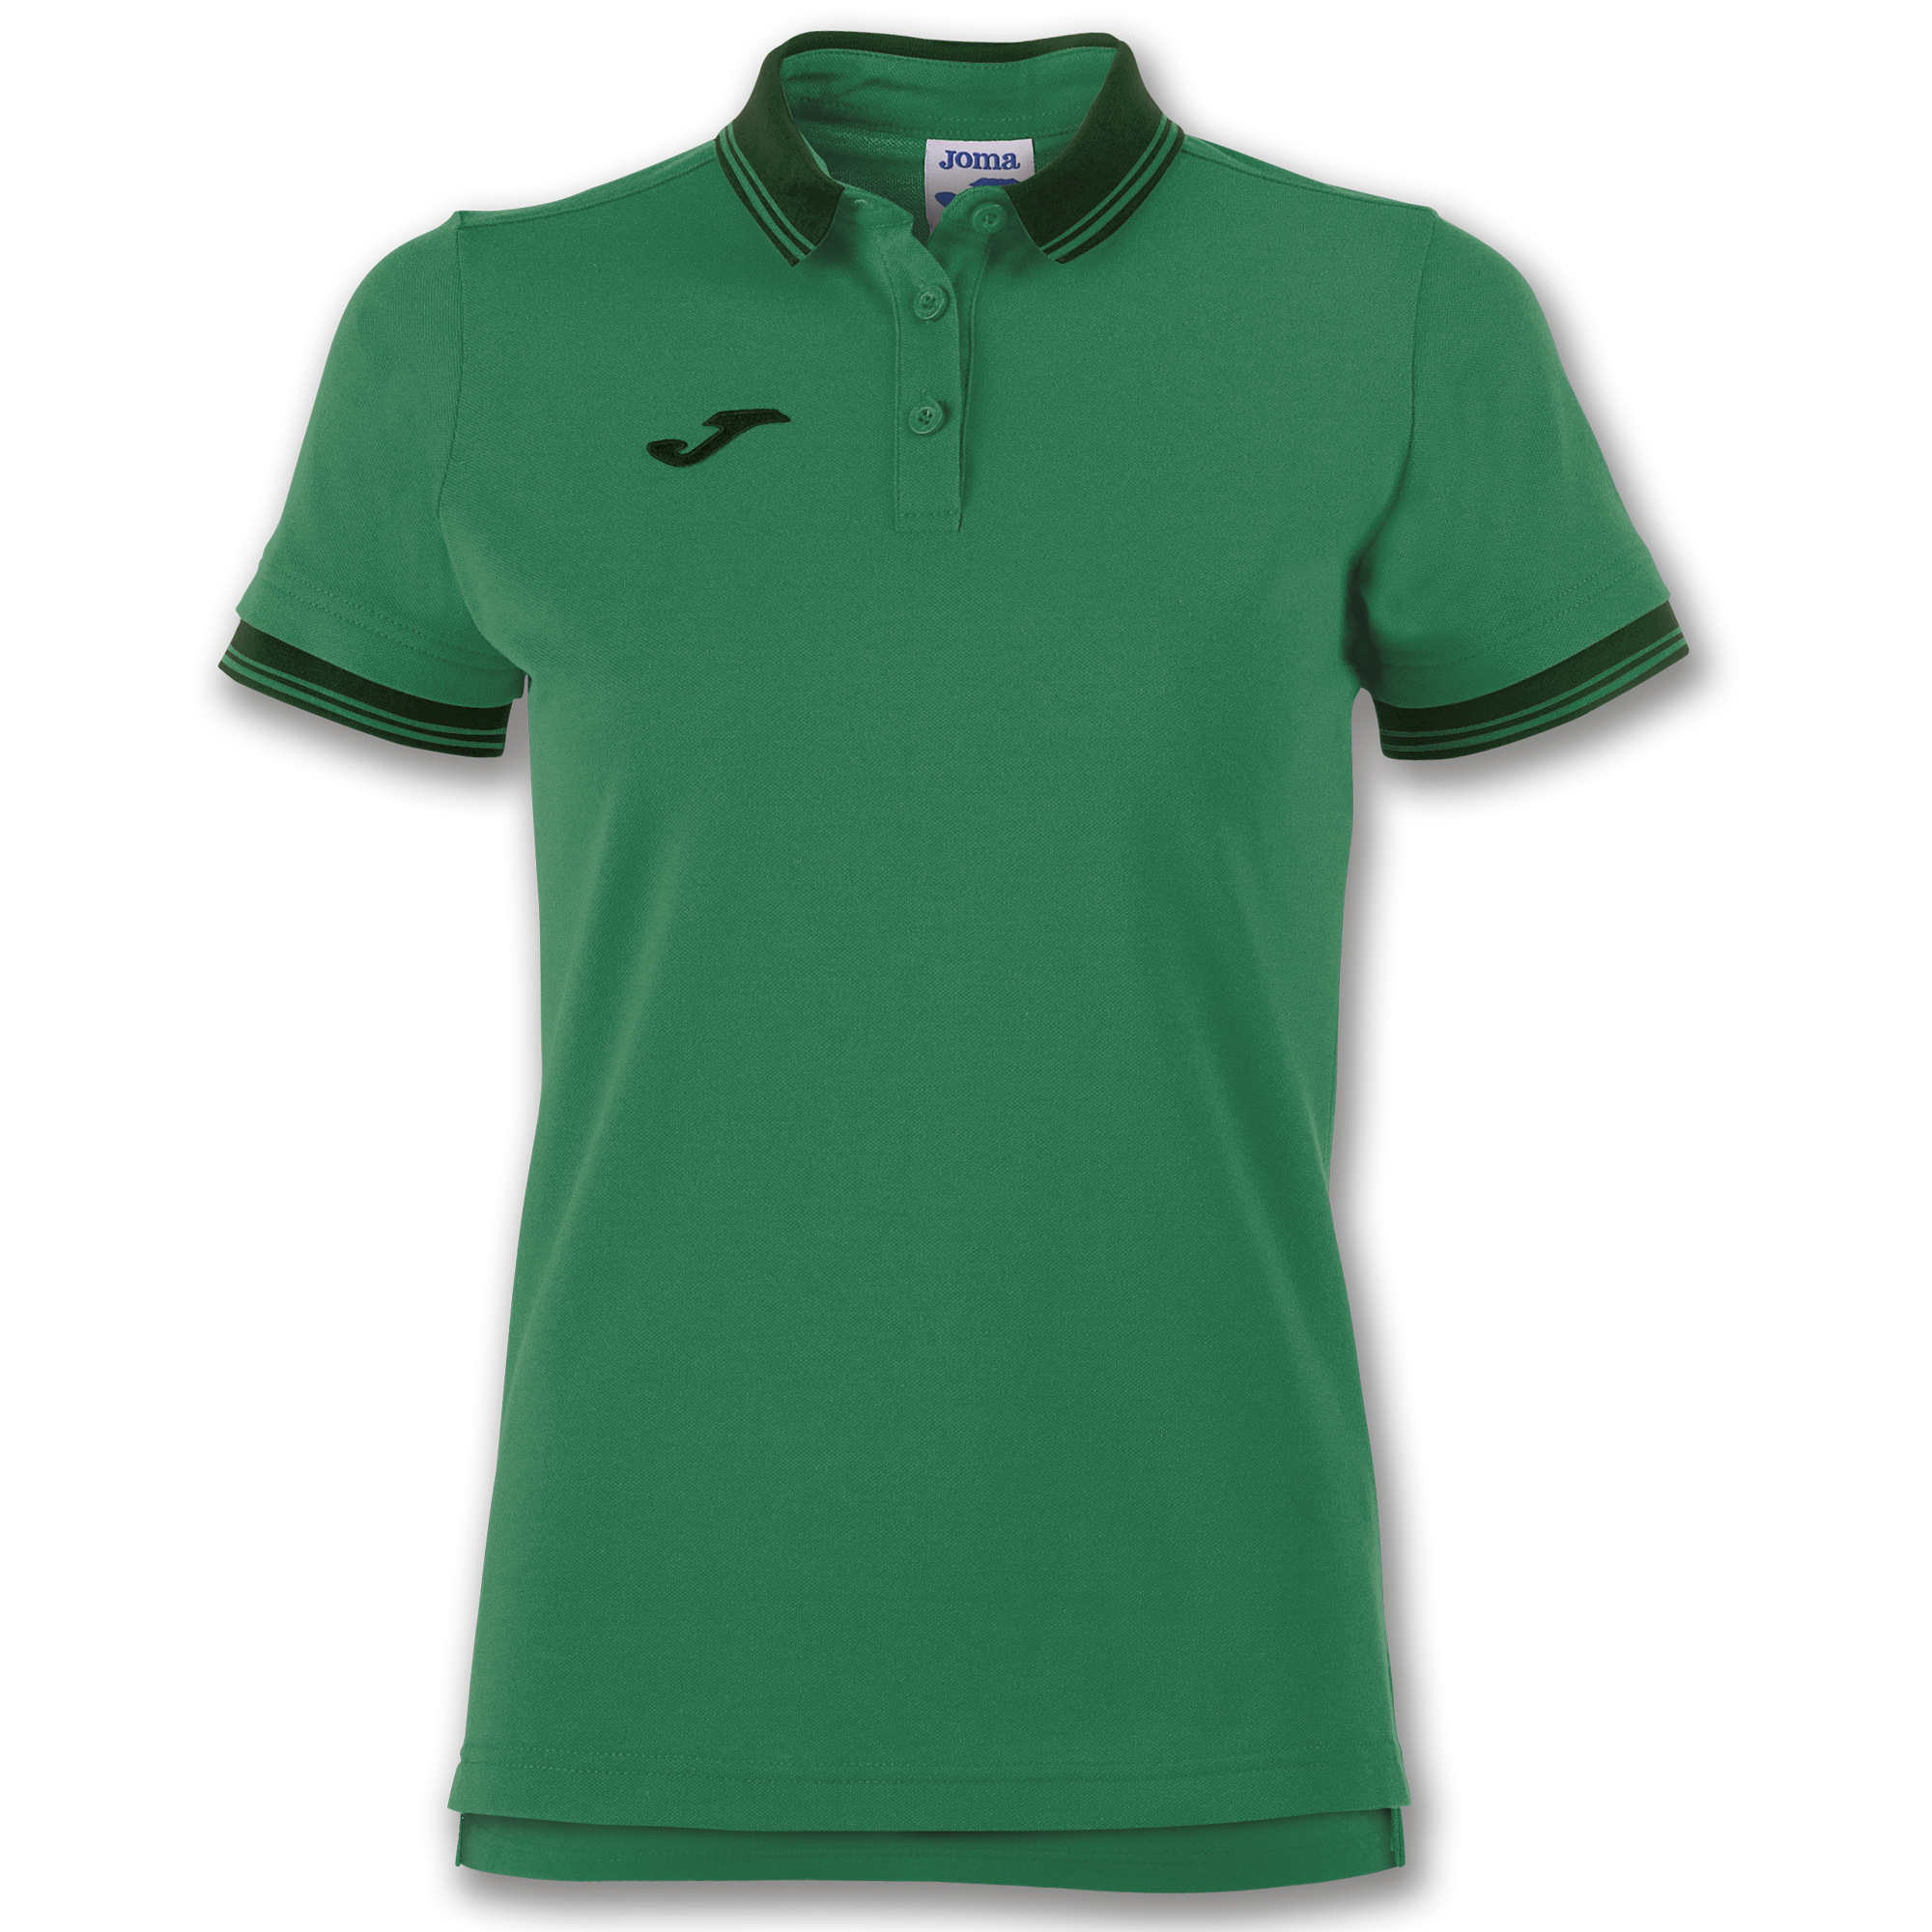 polo shirts for women s/s polo shirt bali ii green women - 1 qzvohhj